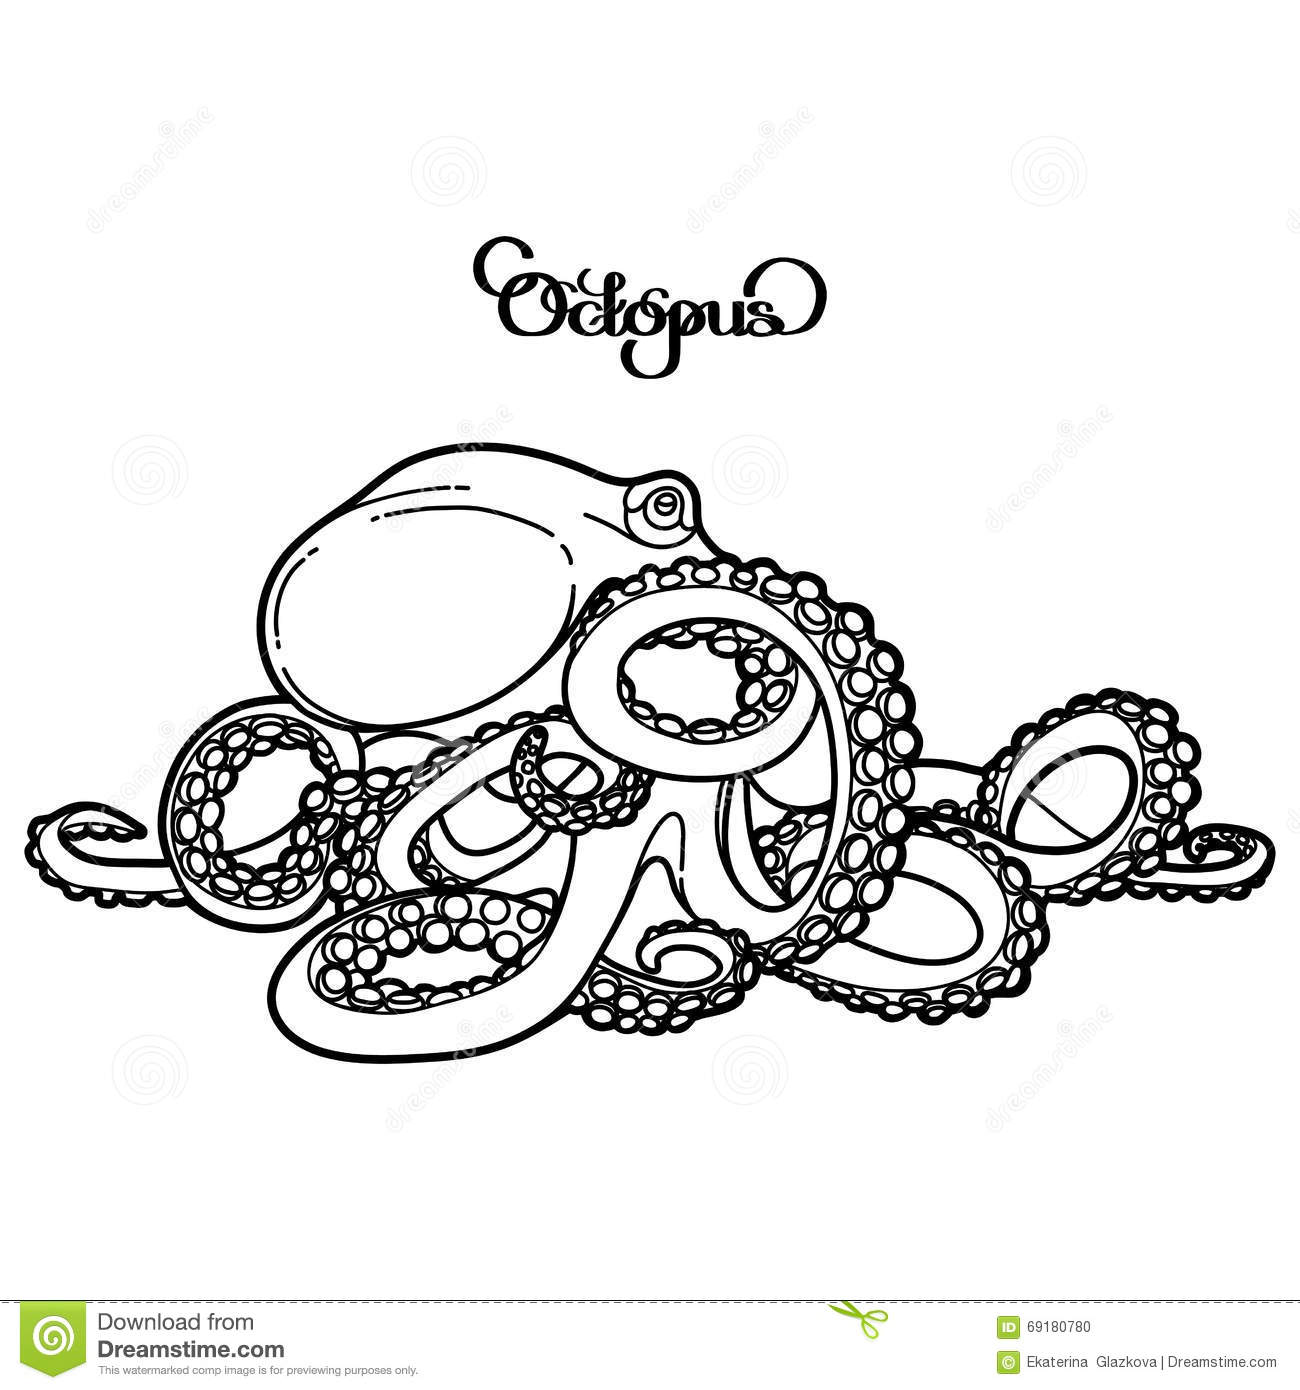 ocean background coloring pages - graphic vector octopus stock vector image of aquarium